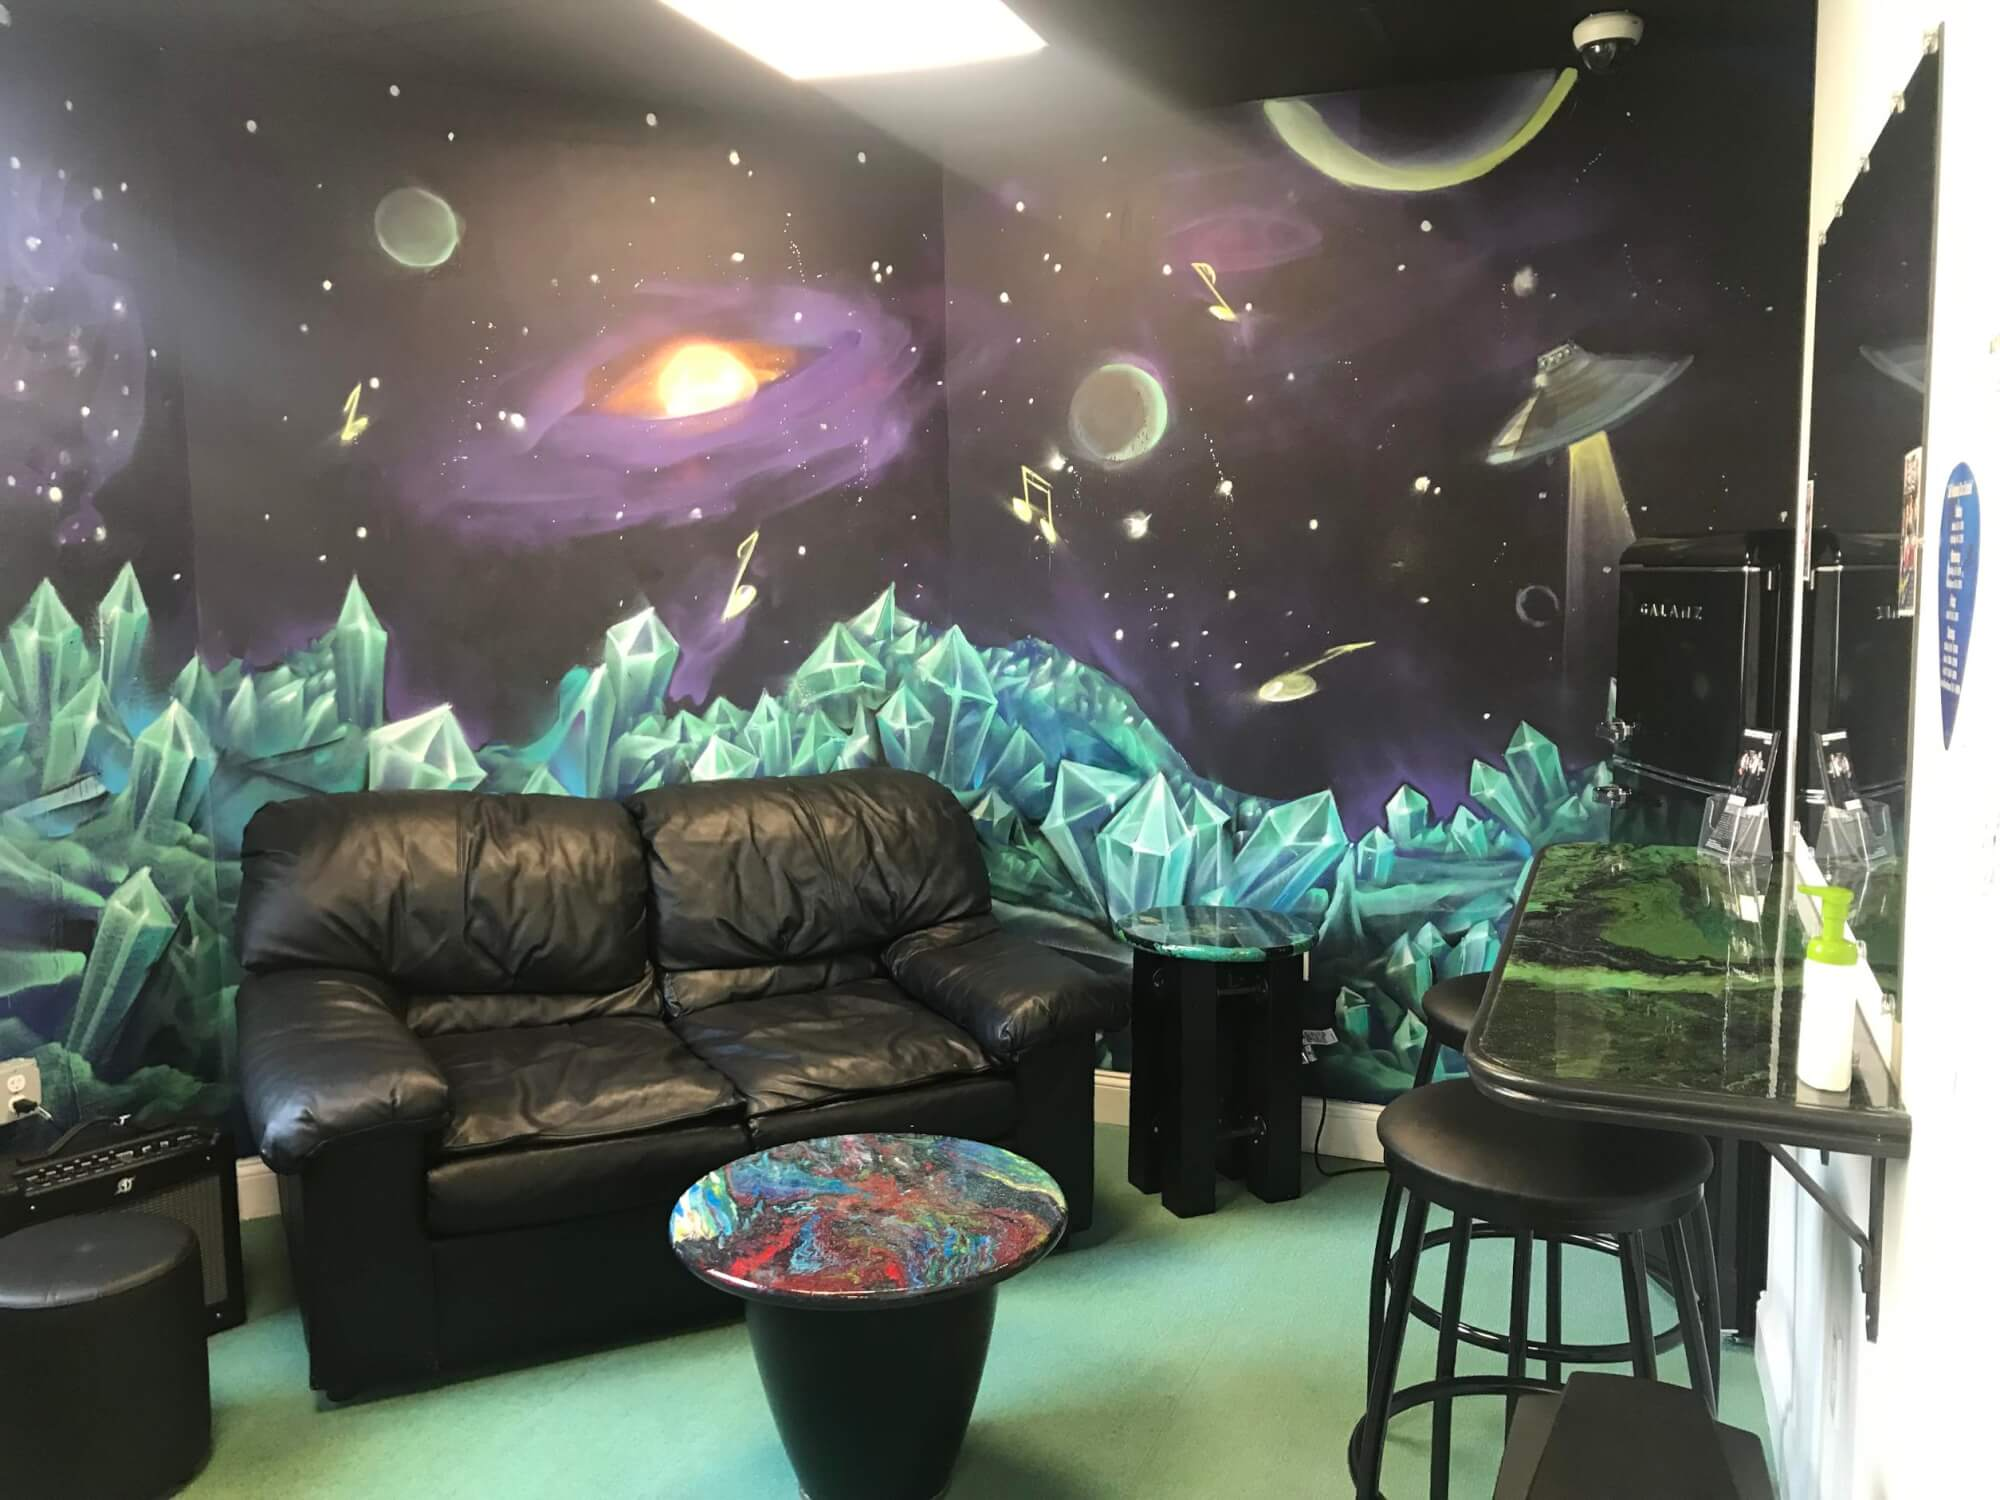 Our outer space green room/student lounge for practicing and pow wows is a great space.